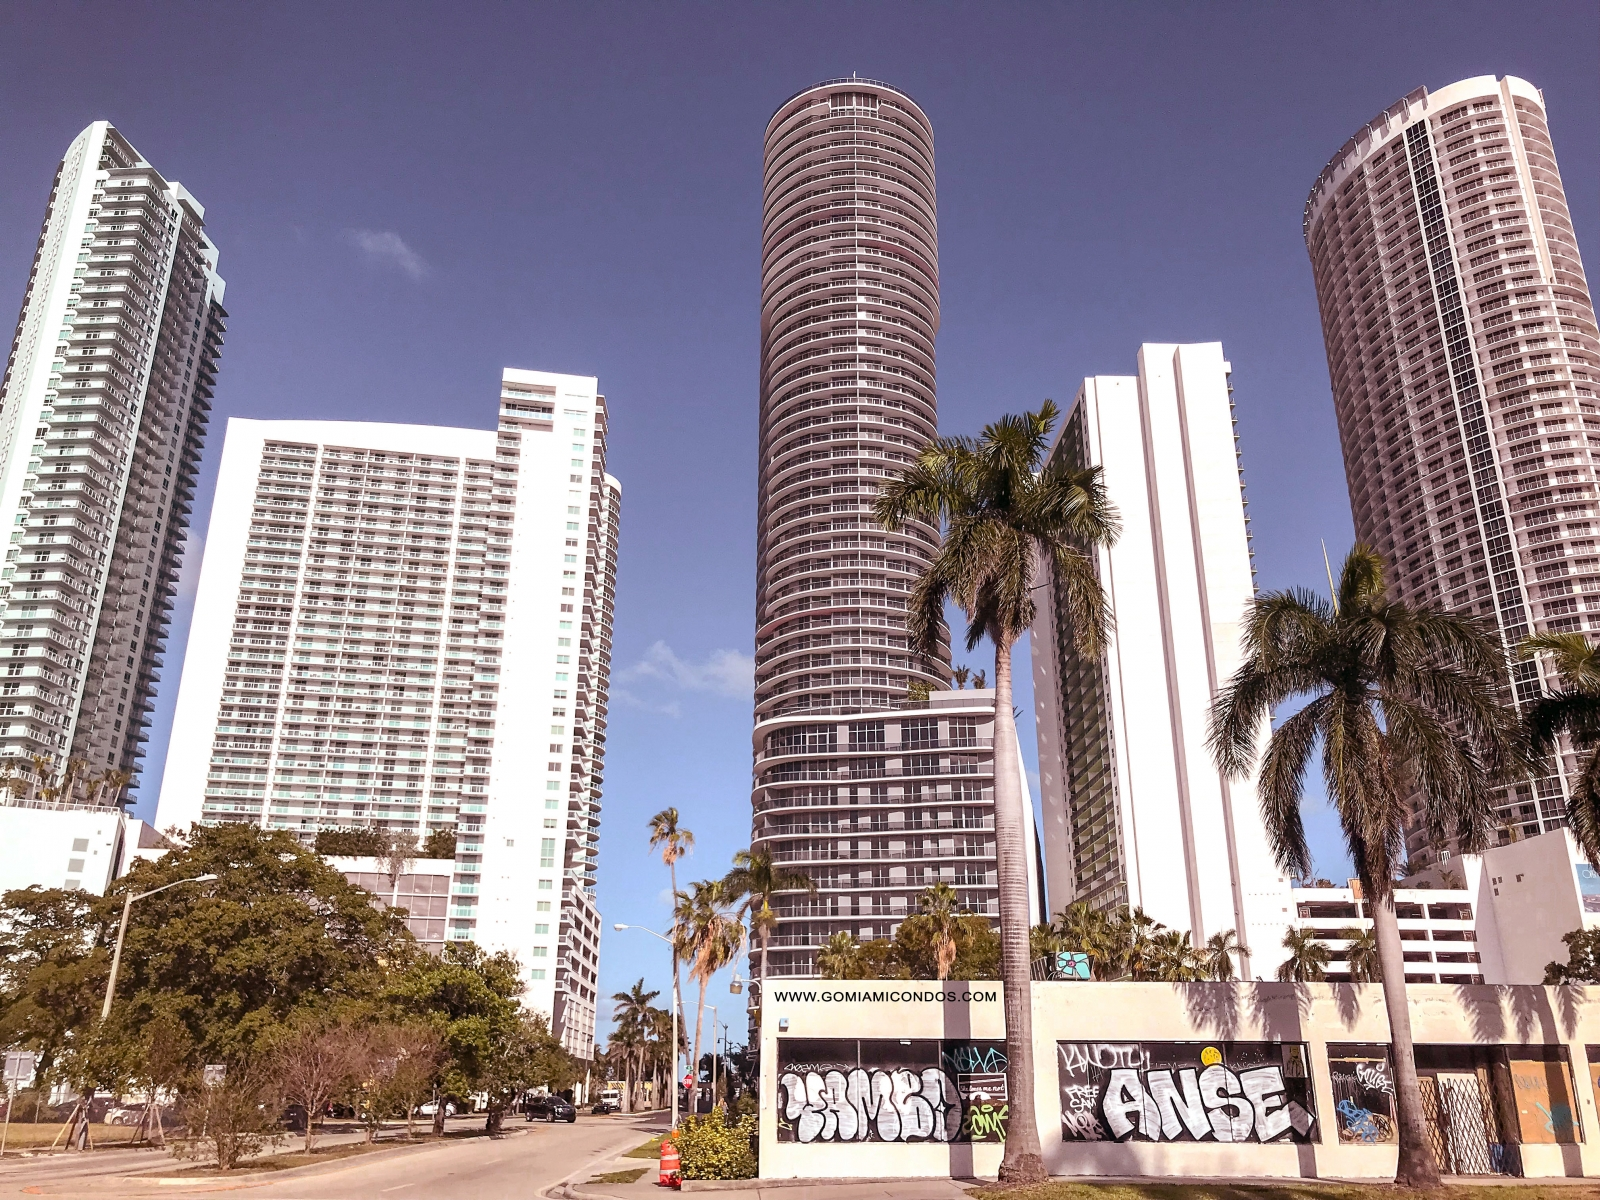 Edgewater back view from Biscayne Blvd